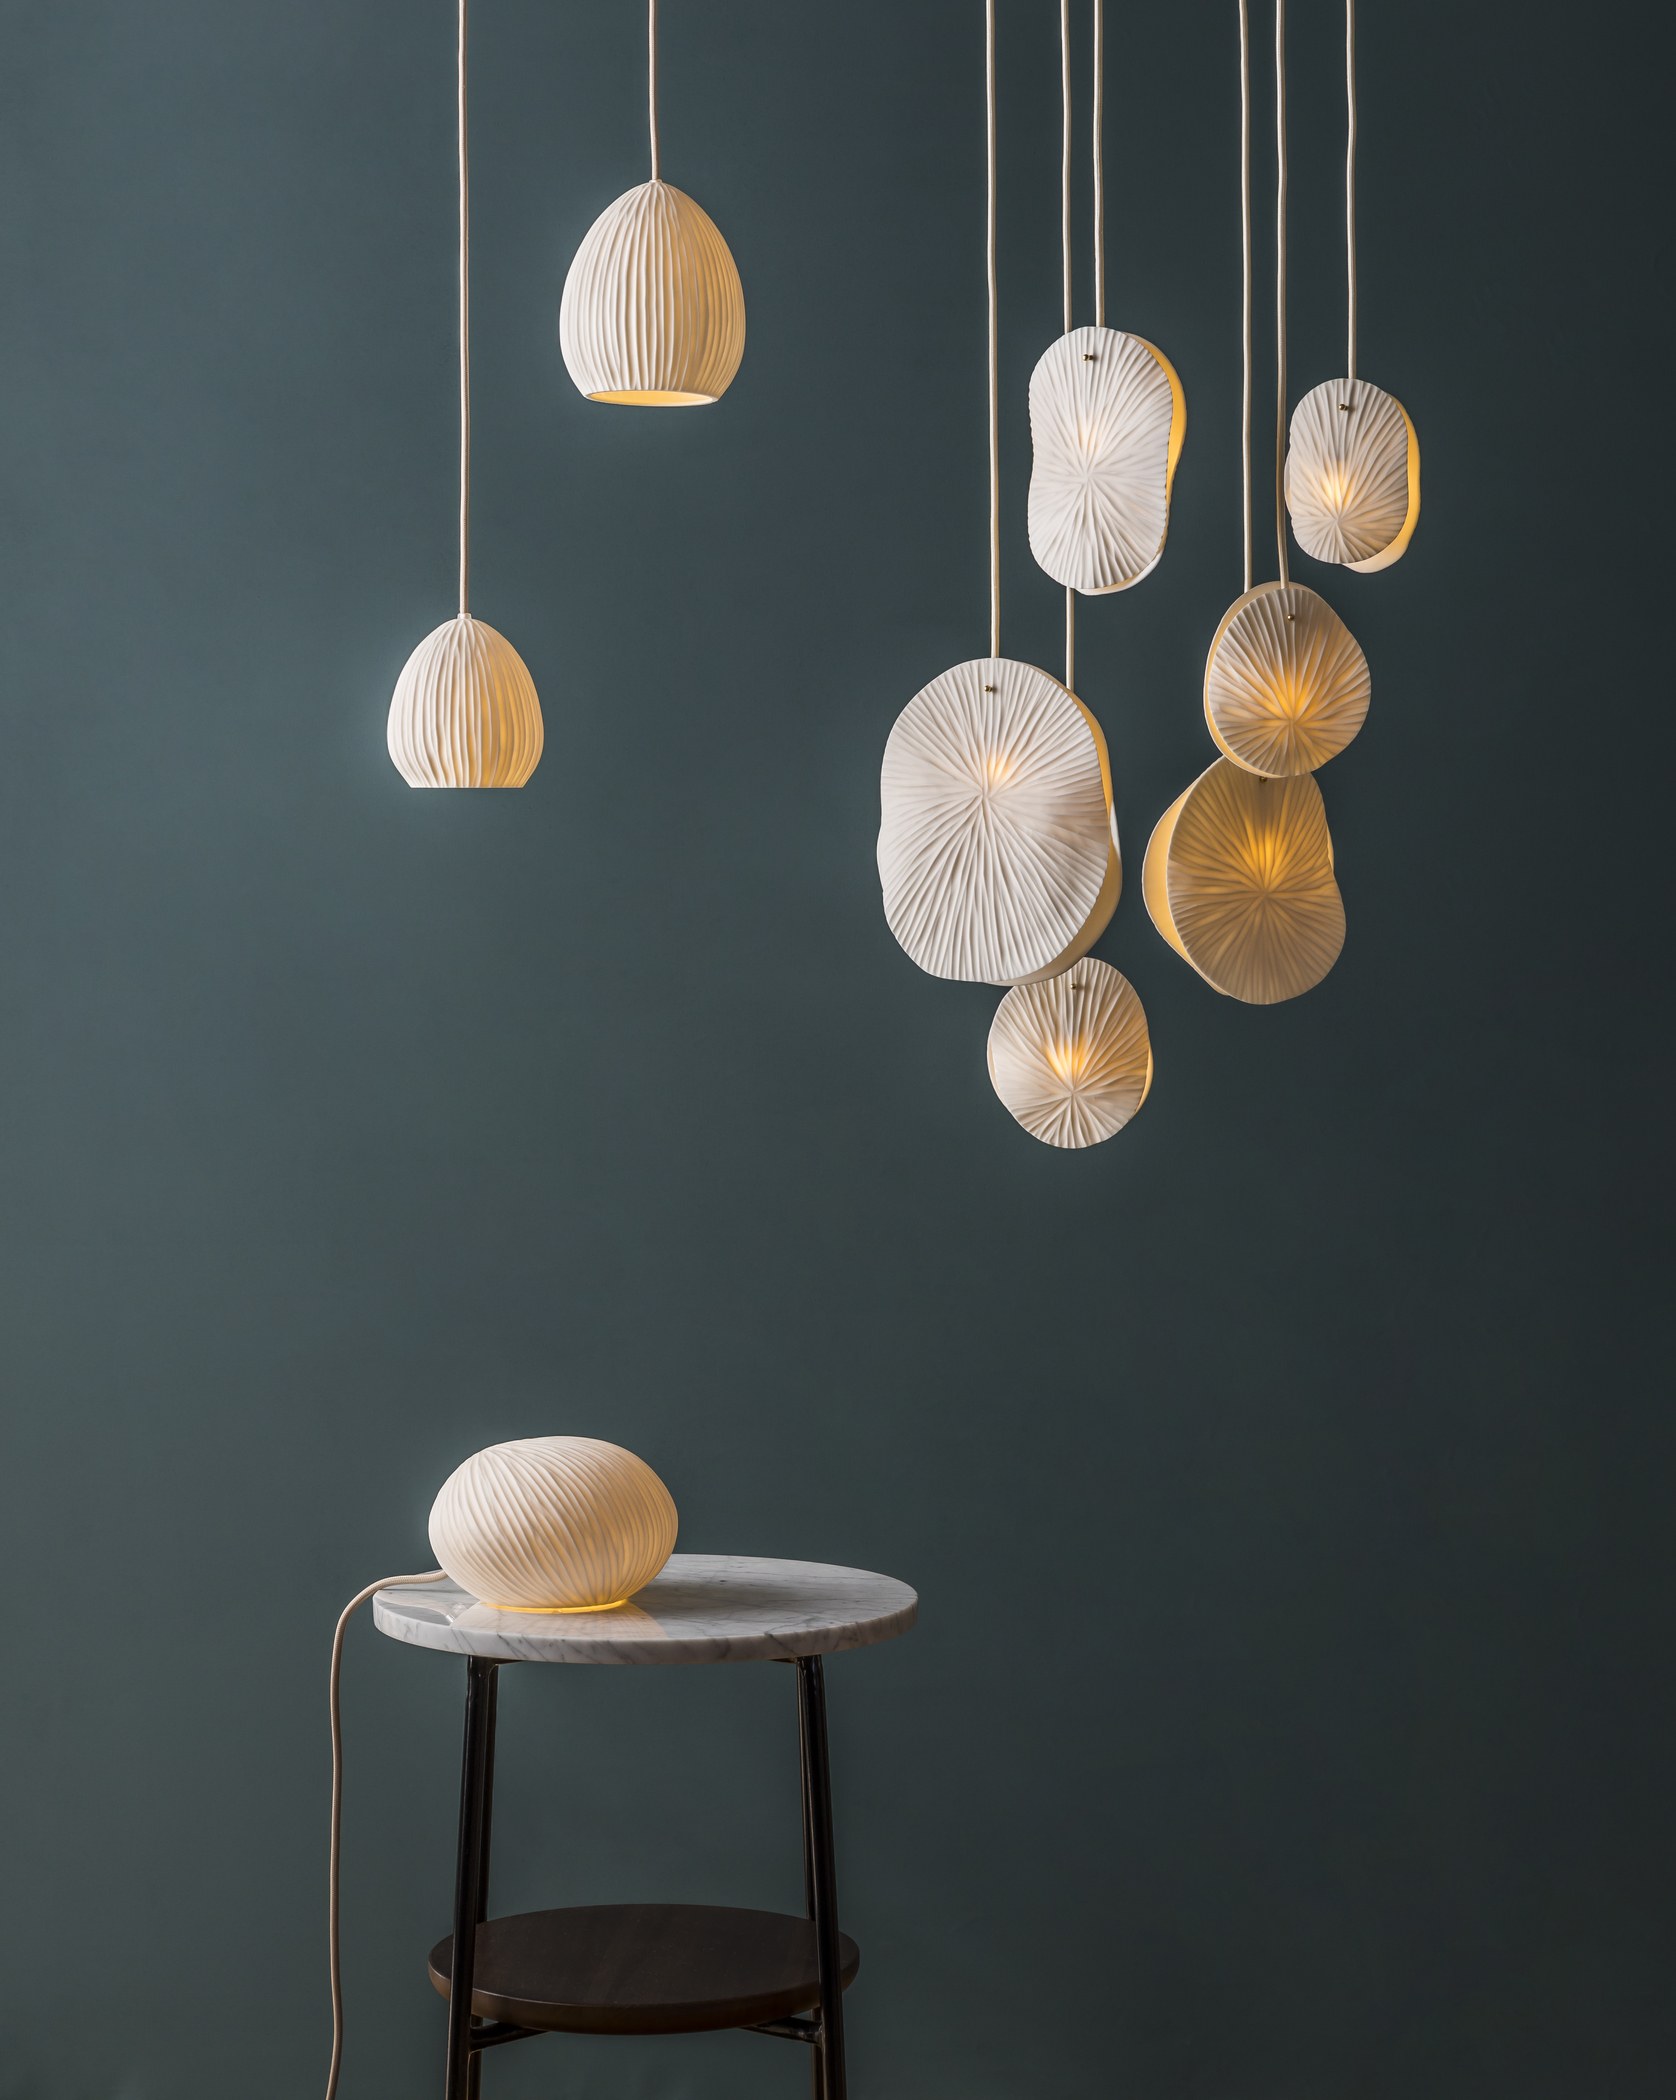 DIPLORIA_GINKGO_VEZZINI_LIGHTING_heals